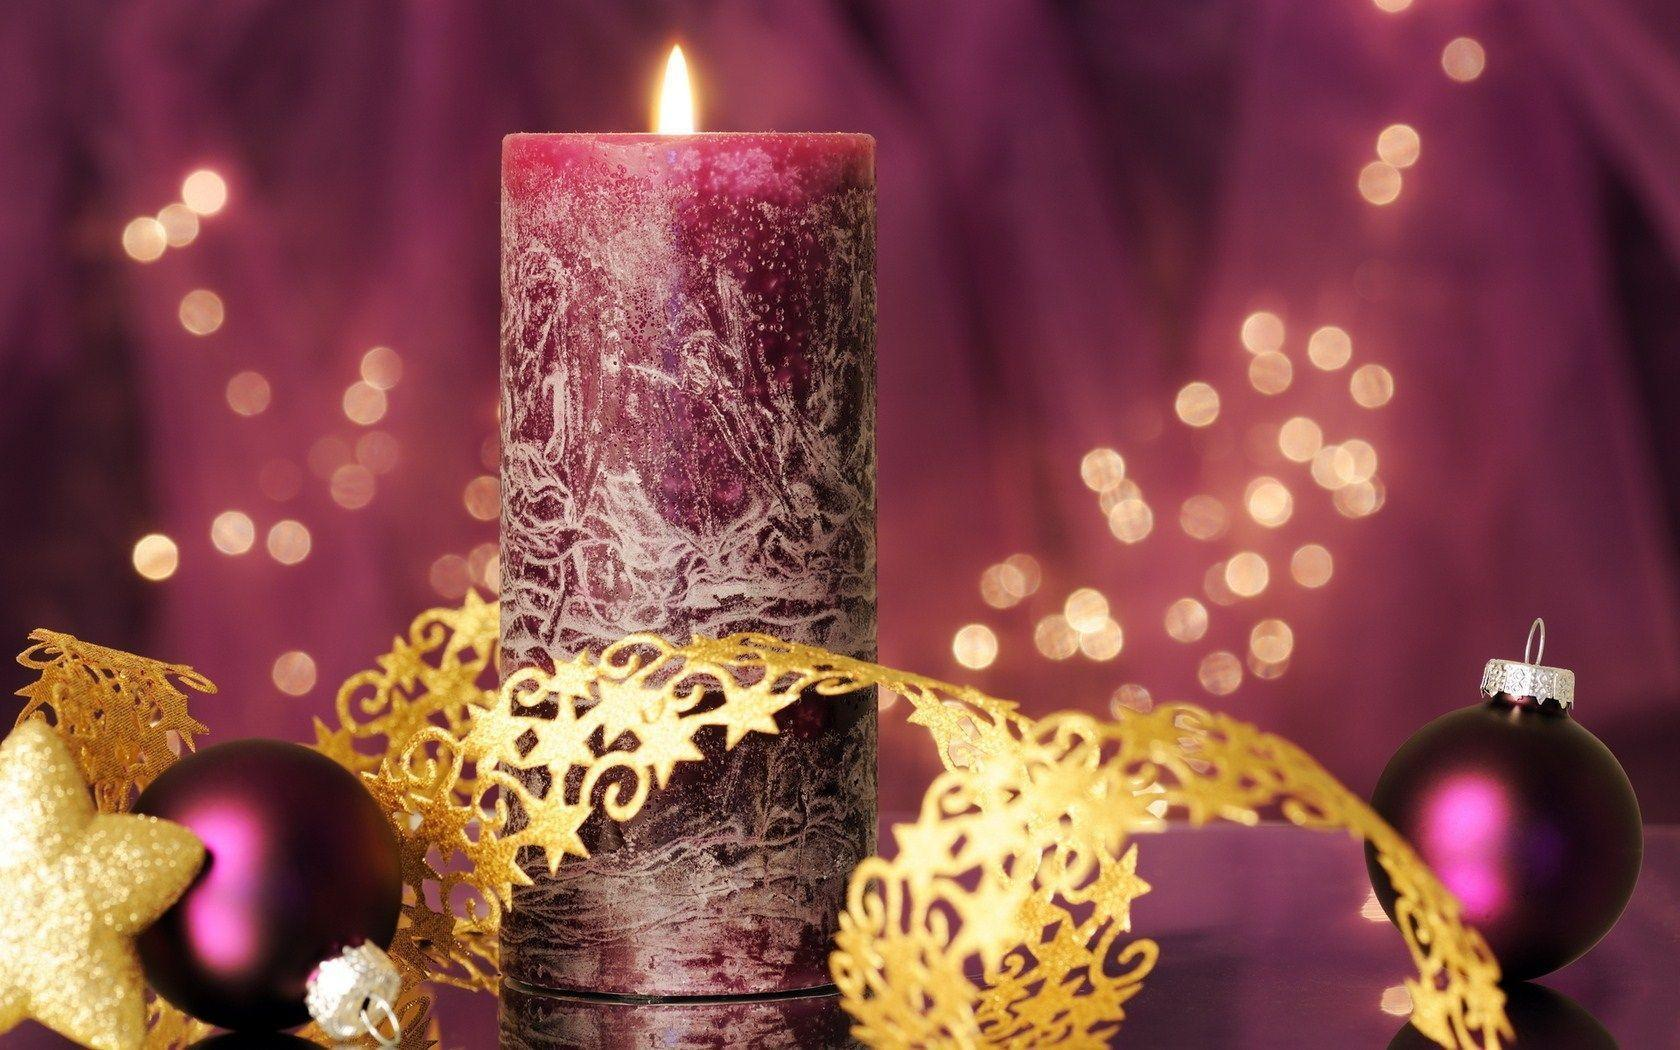 Candle HD Wallpapers Backgrounds Wallpaper